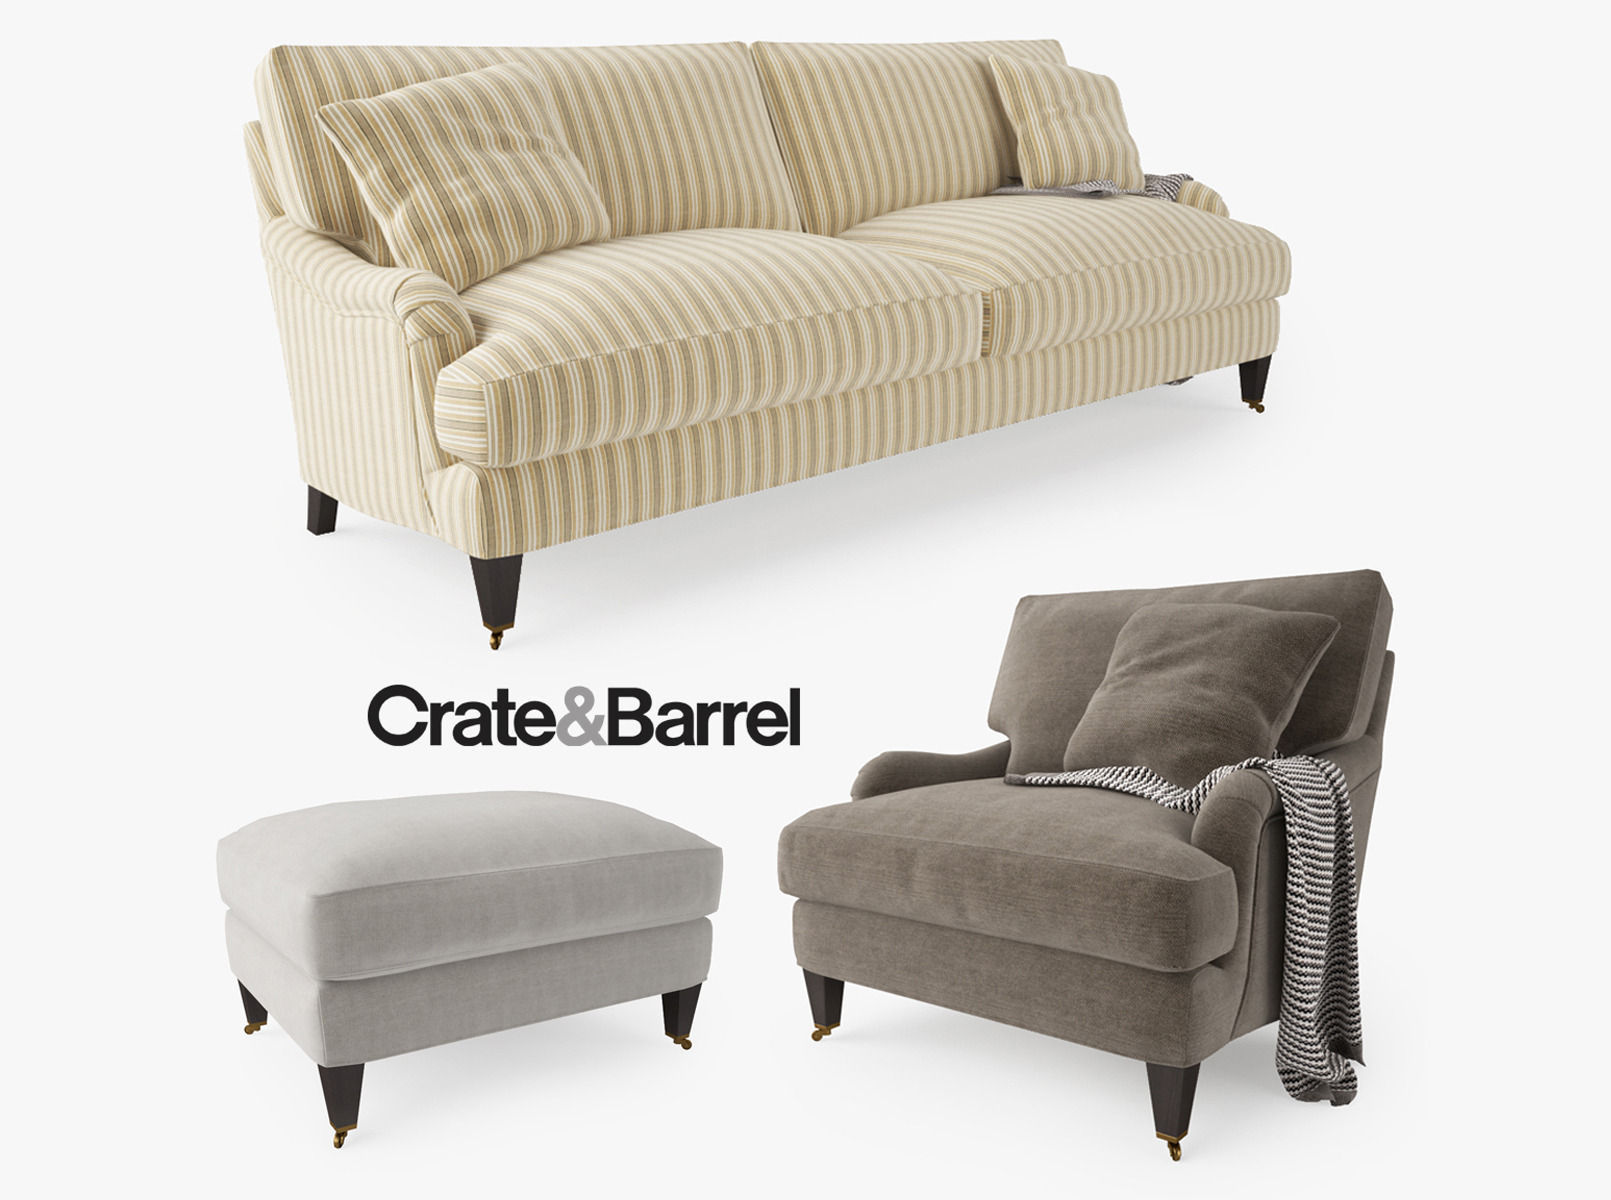 crate and barrel essex sofa collection 3d model max obj fbx mtl. Black Bedroom Furniture Sets. Home Design Ideas